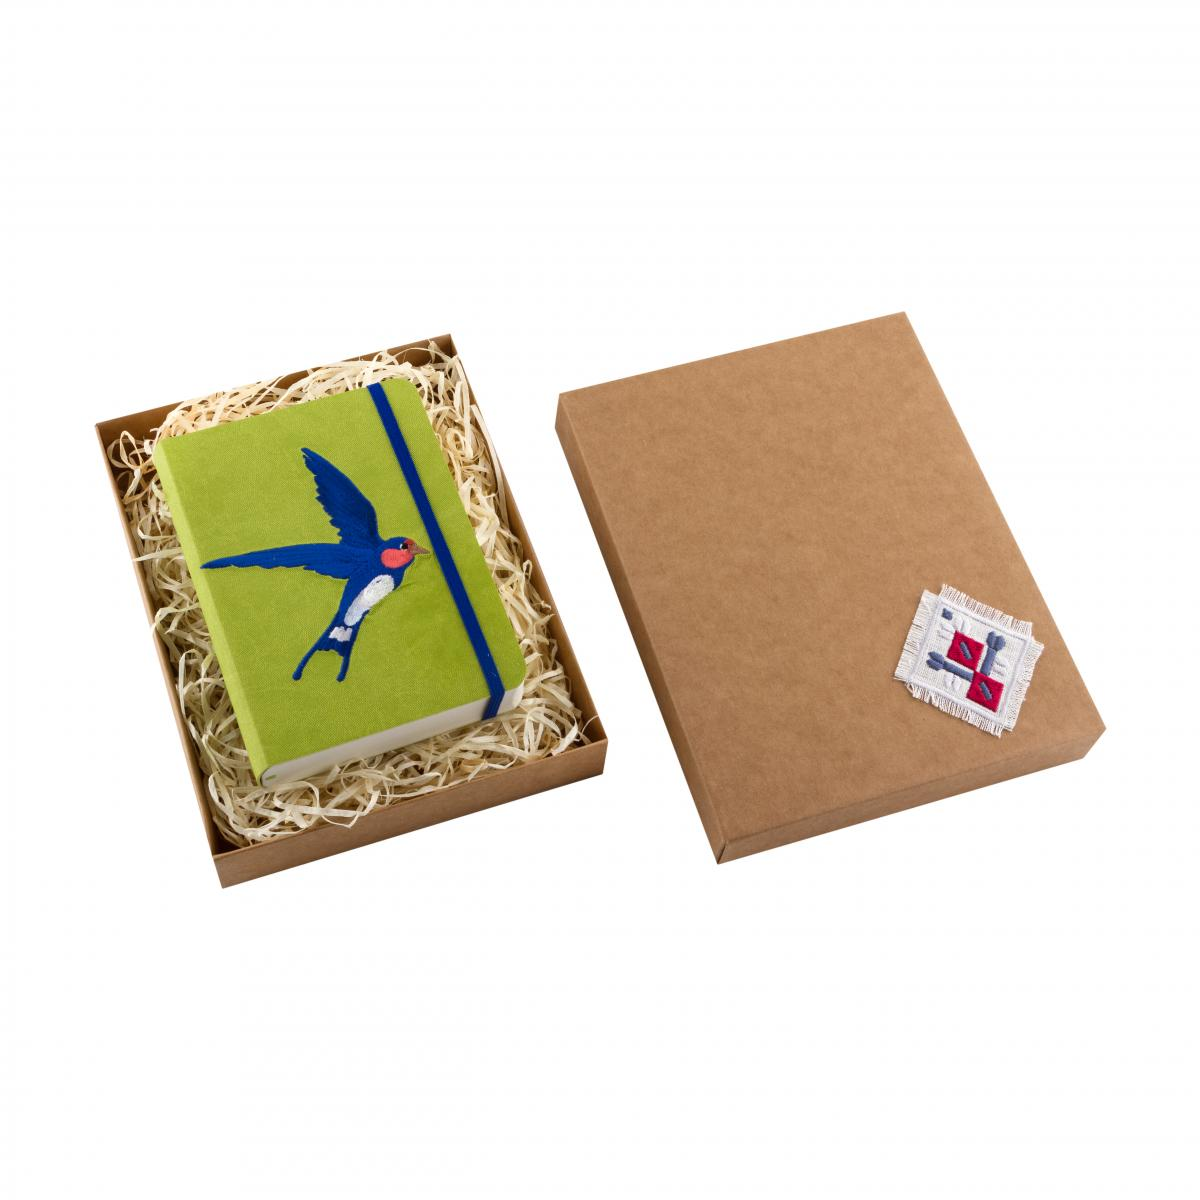 "Eco-leather notebook with embroidery ""Swallow"", green. Photo №3. 